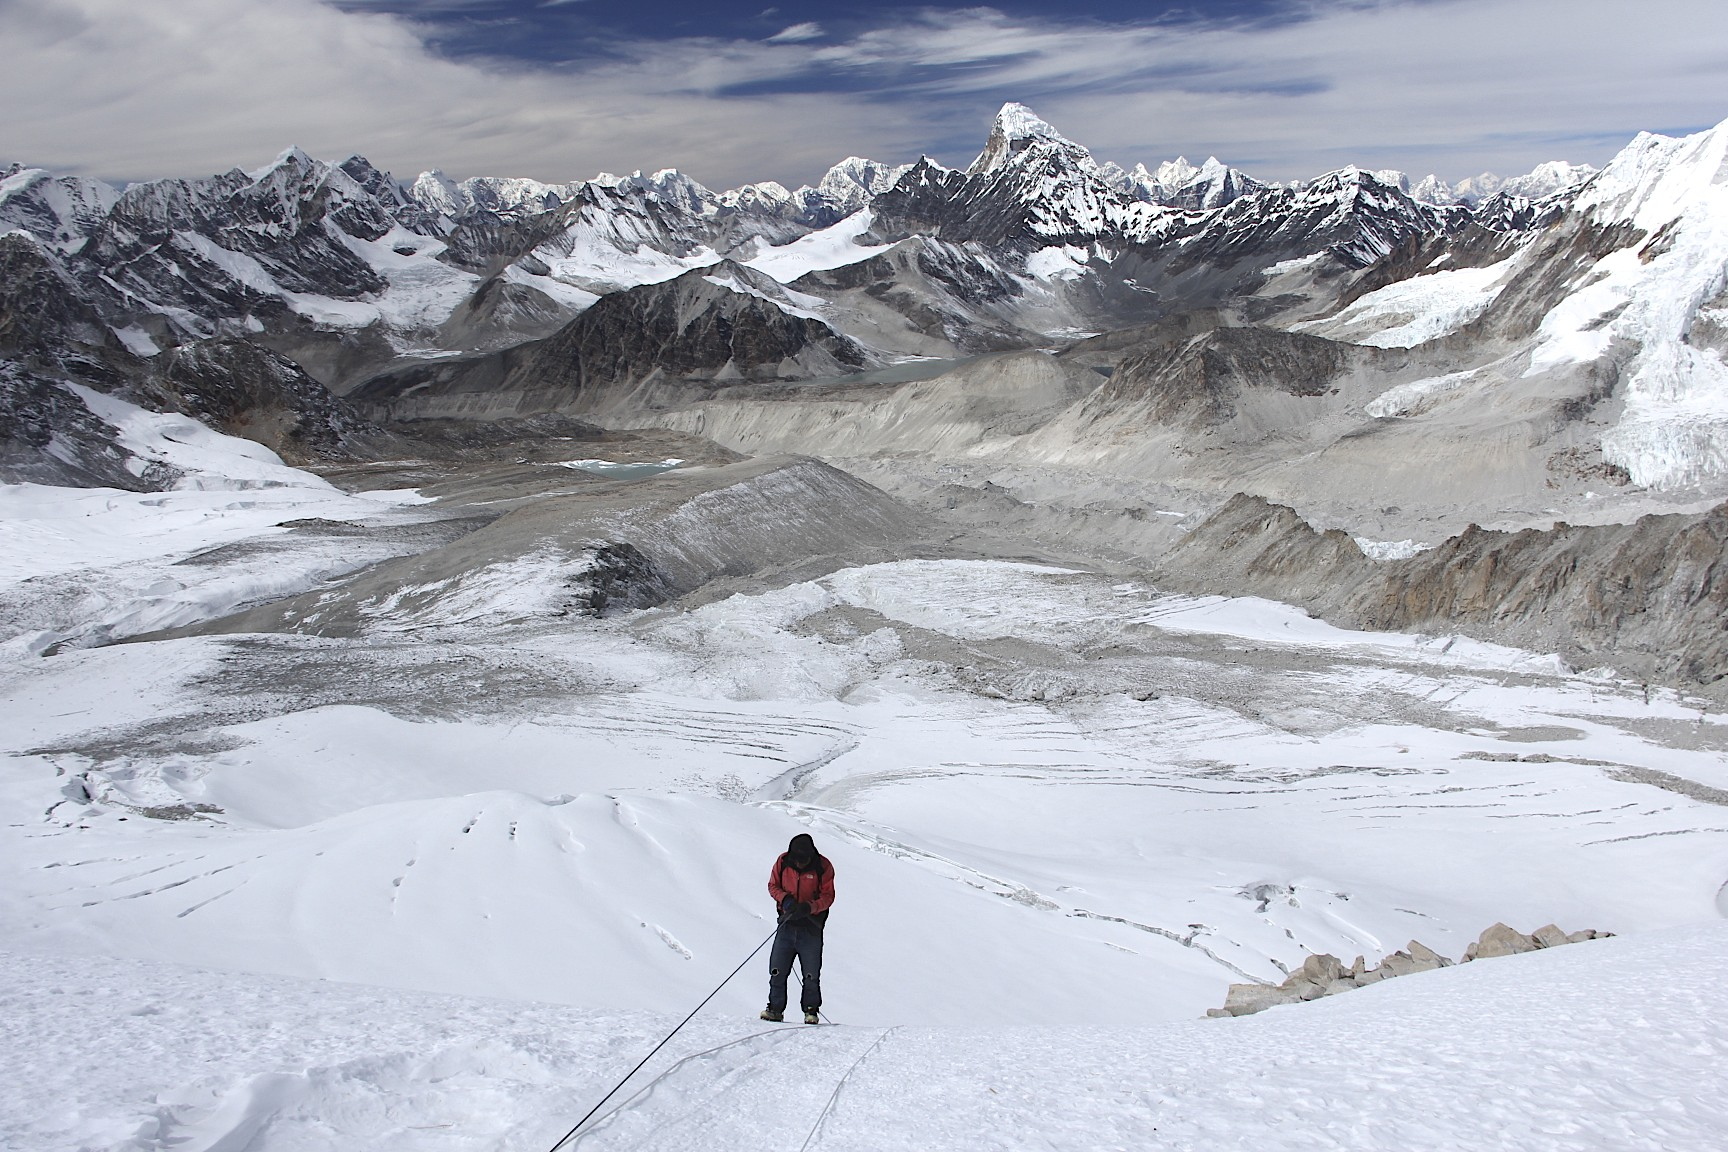 Looking down from the West Col Pass at 6,150m. Descending from the West Col with a spectacular panorama of high Himalaya. You can even see Shishapagma on the extreme right in the far distance.